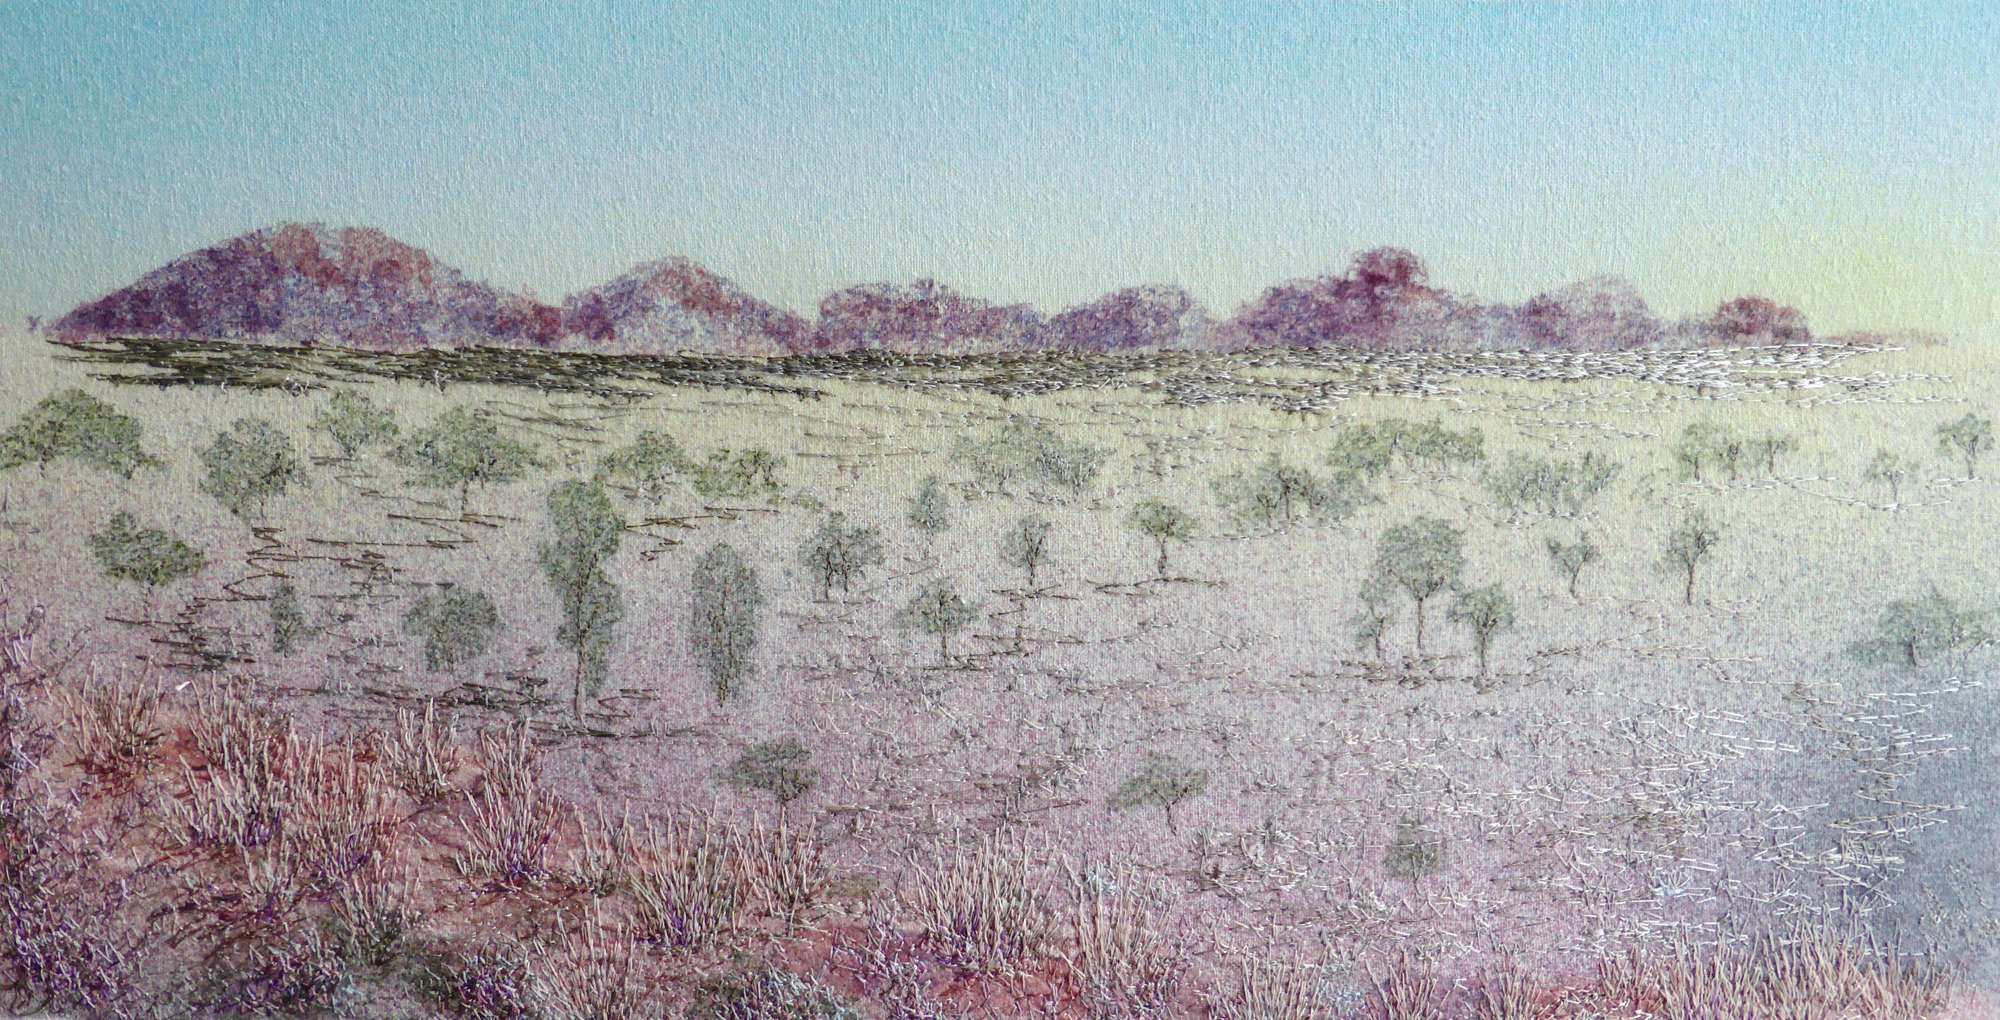 Sunrise over Kata Tjuta (2014) Free-motion machine embroidery by Andrea McCallum by Andrea McCallum